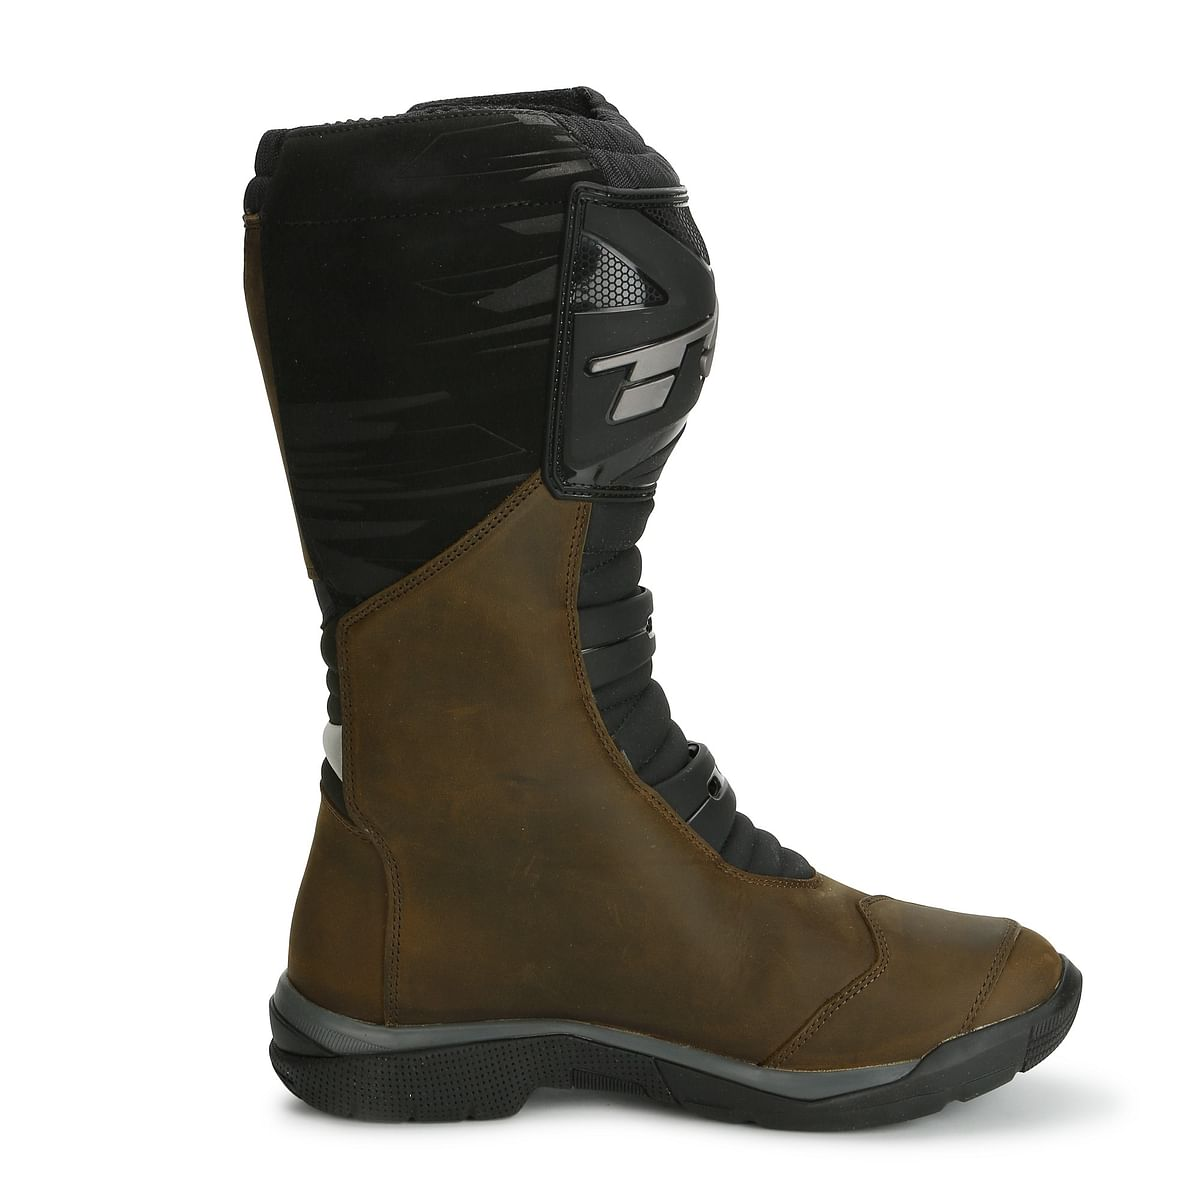 These Stelvio WP Boots are ideal for all weather conditions